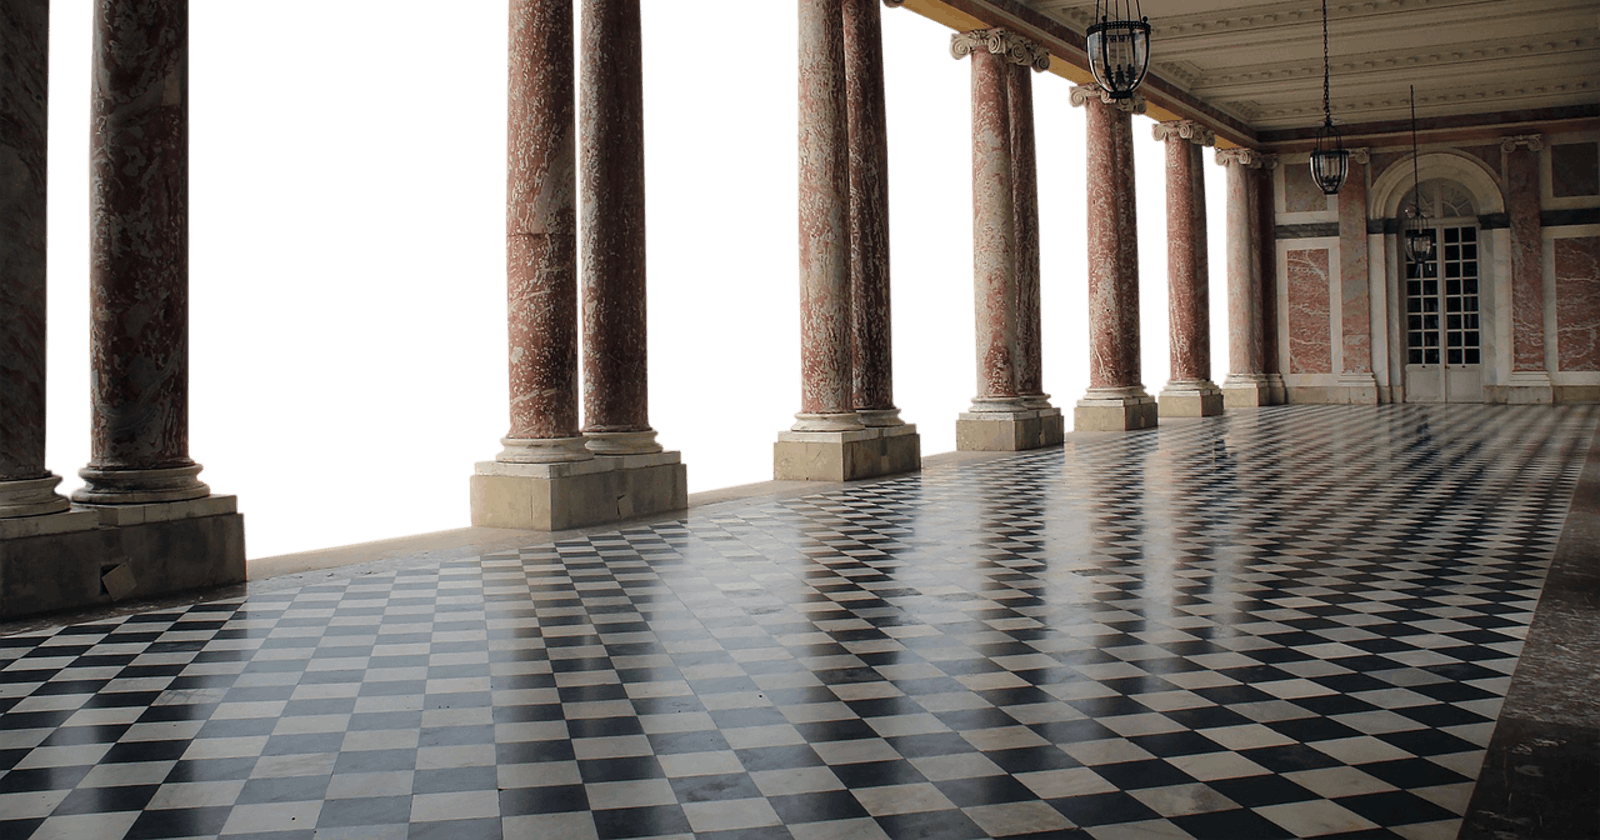 [Learning Notes] Learning to Learn: The Pillars